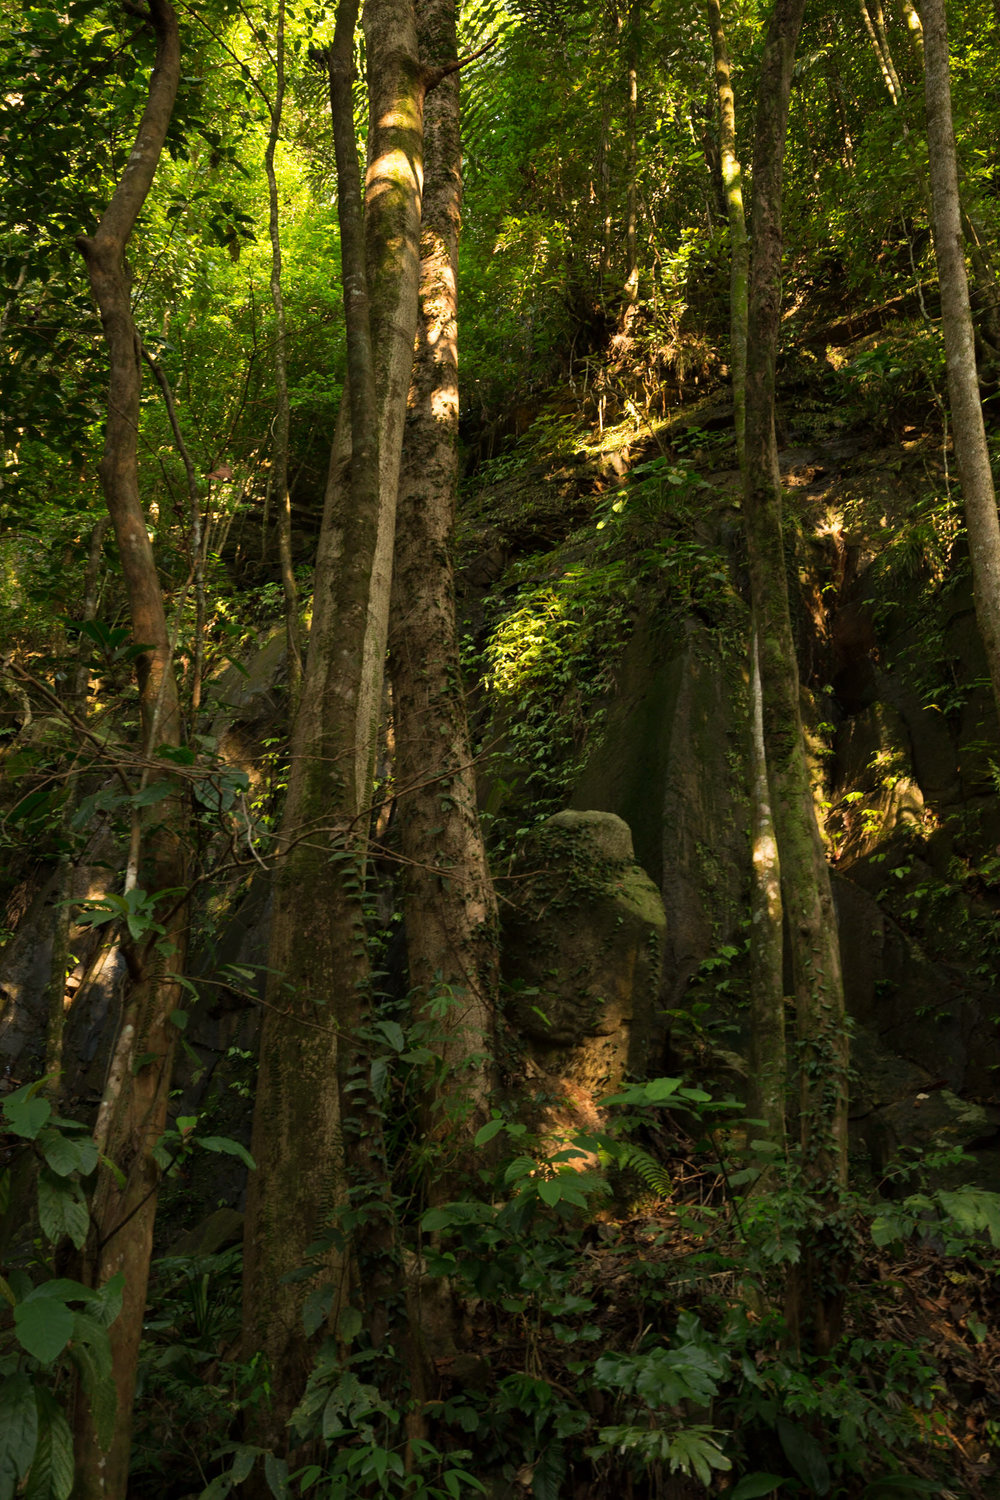 The jungle Borneo is extremely dense, hot and humid, with only a few anomalous sun rays making it to the ground.